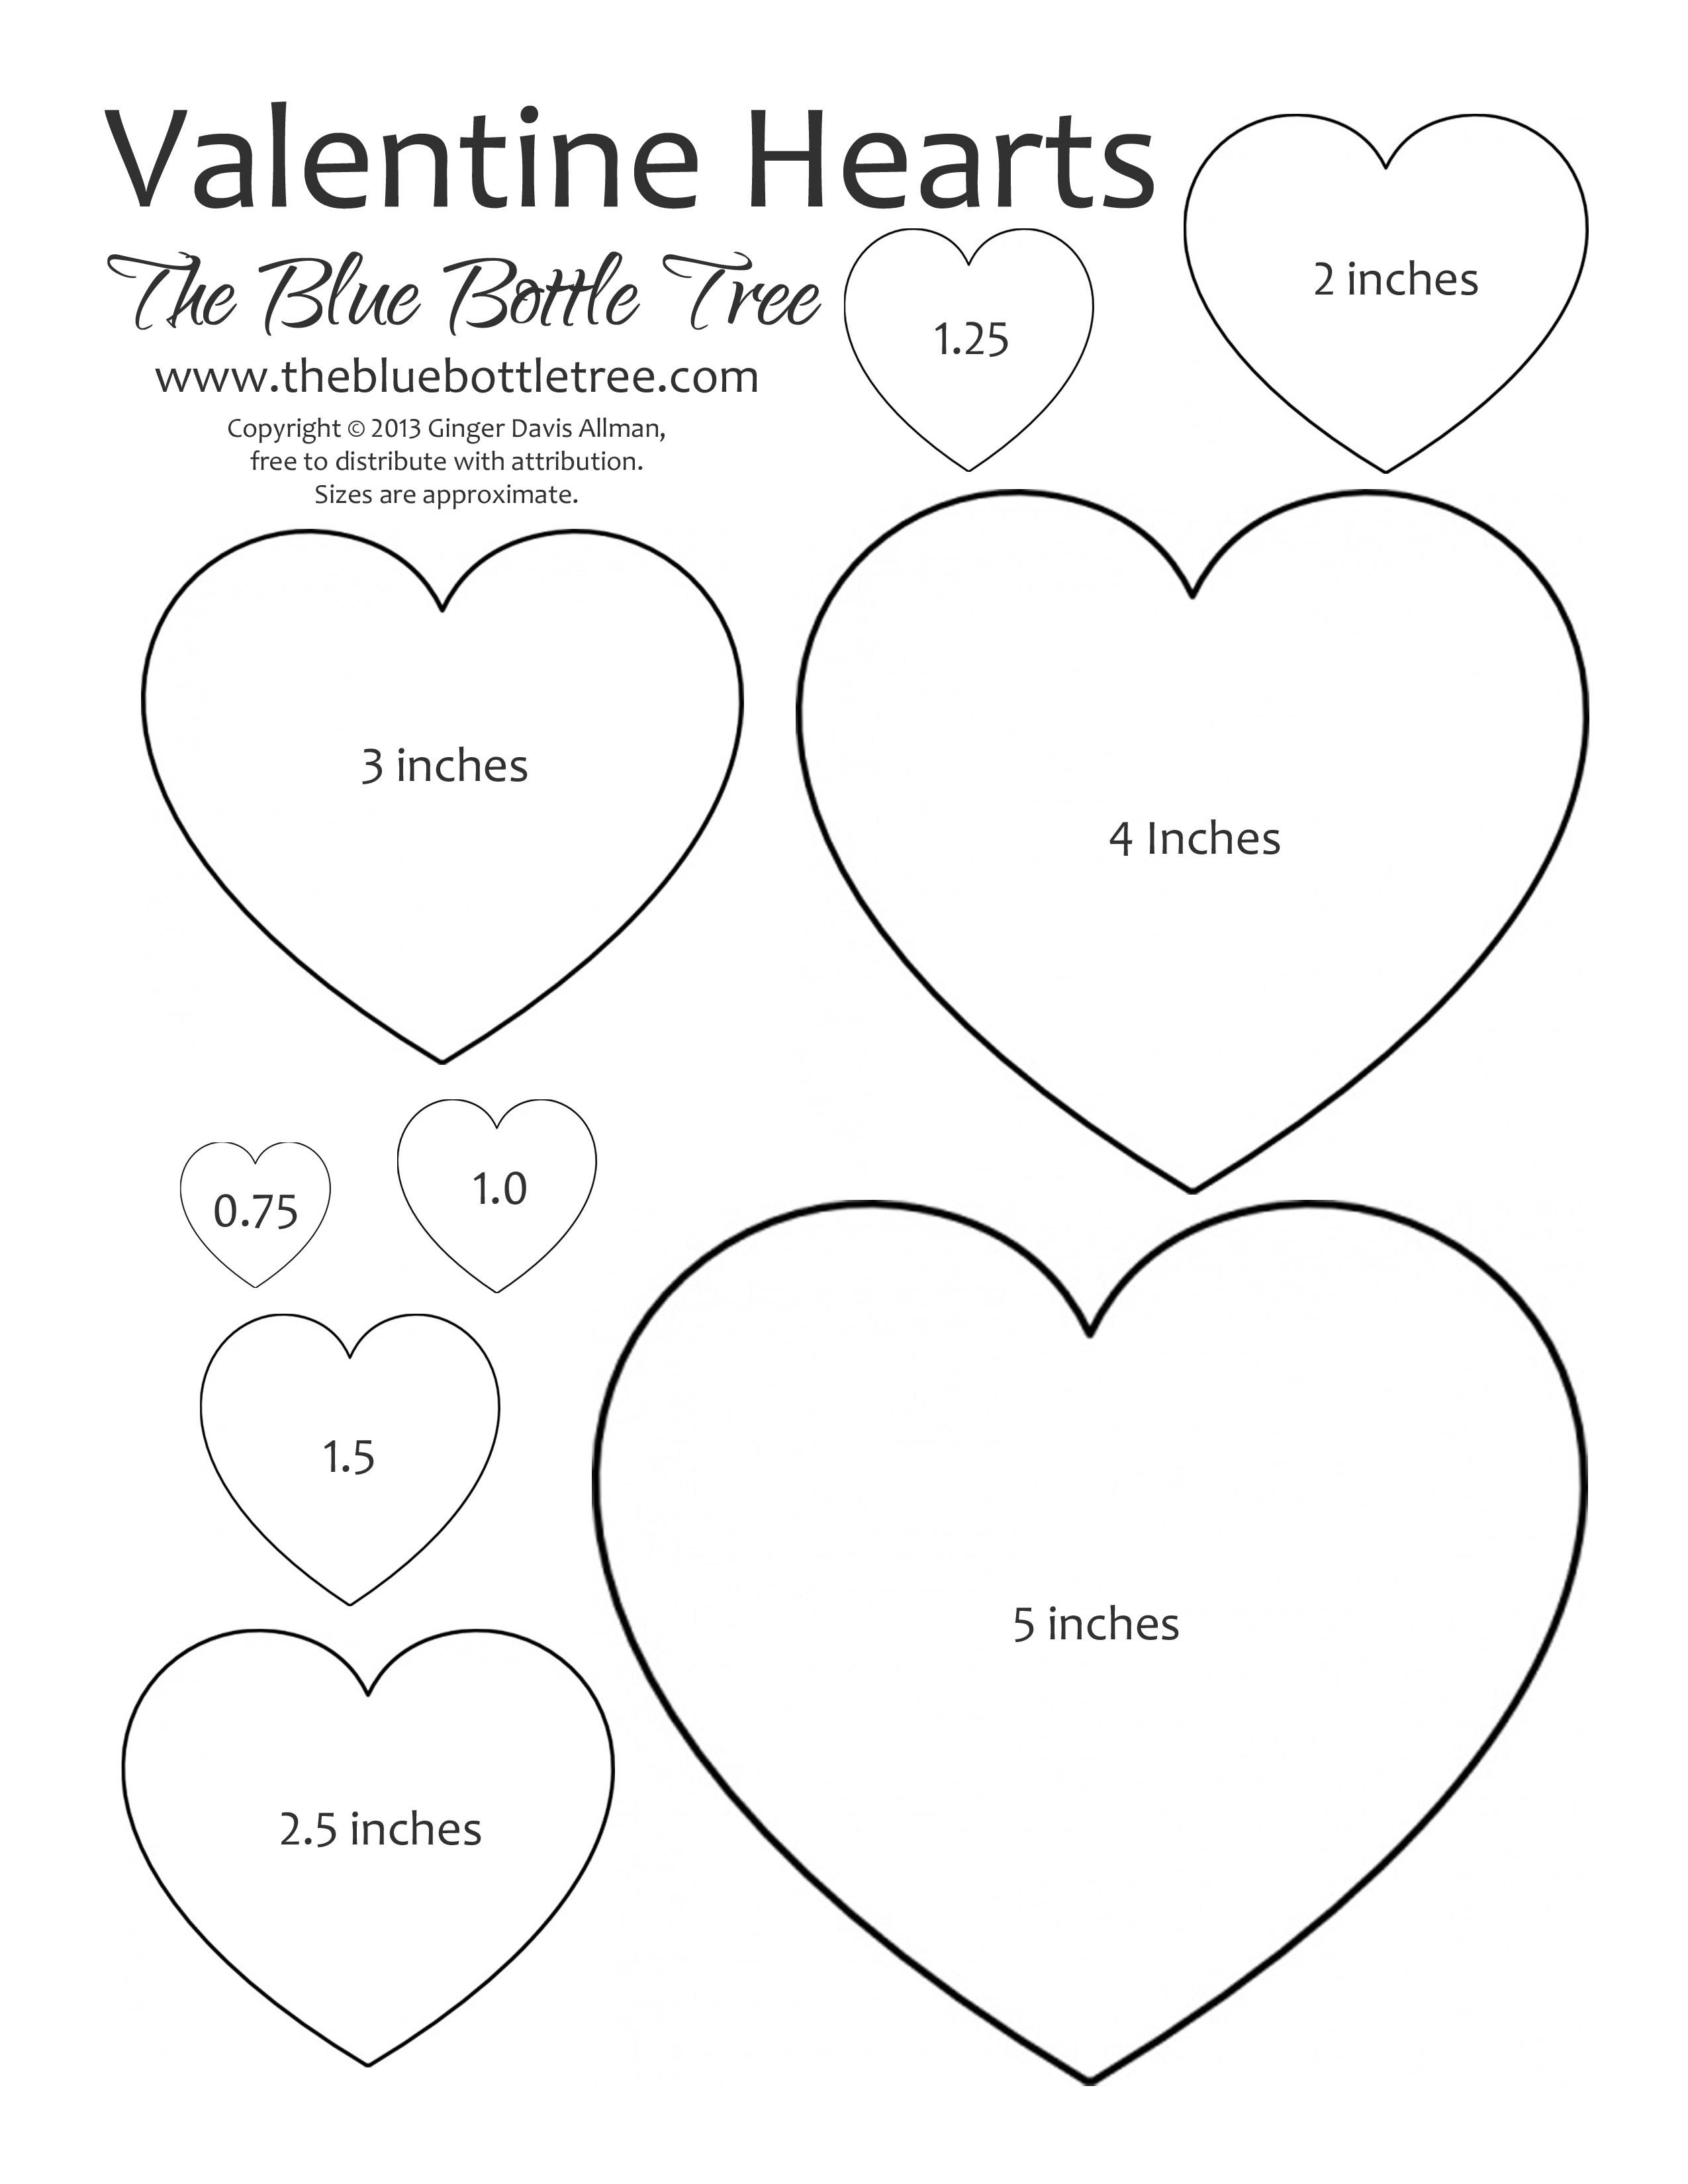 Uncategorized Valentine Heart Template valentine hearts clip art in sizes ranging from 34 to 5 patterns hearts